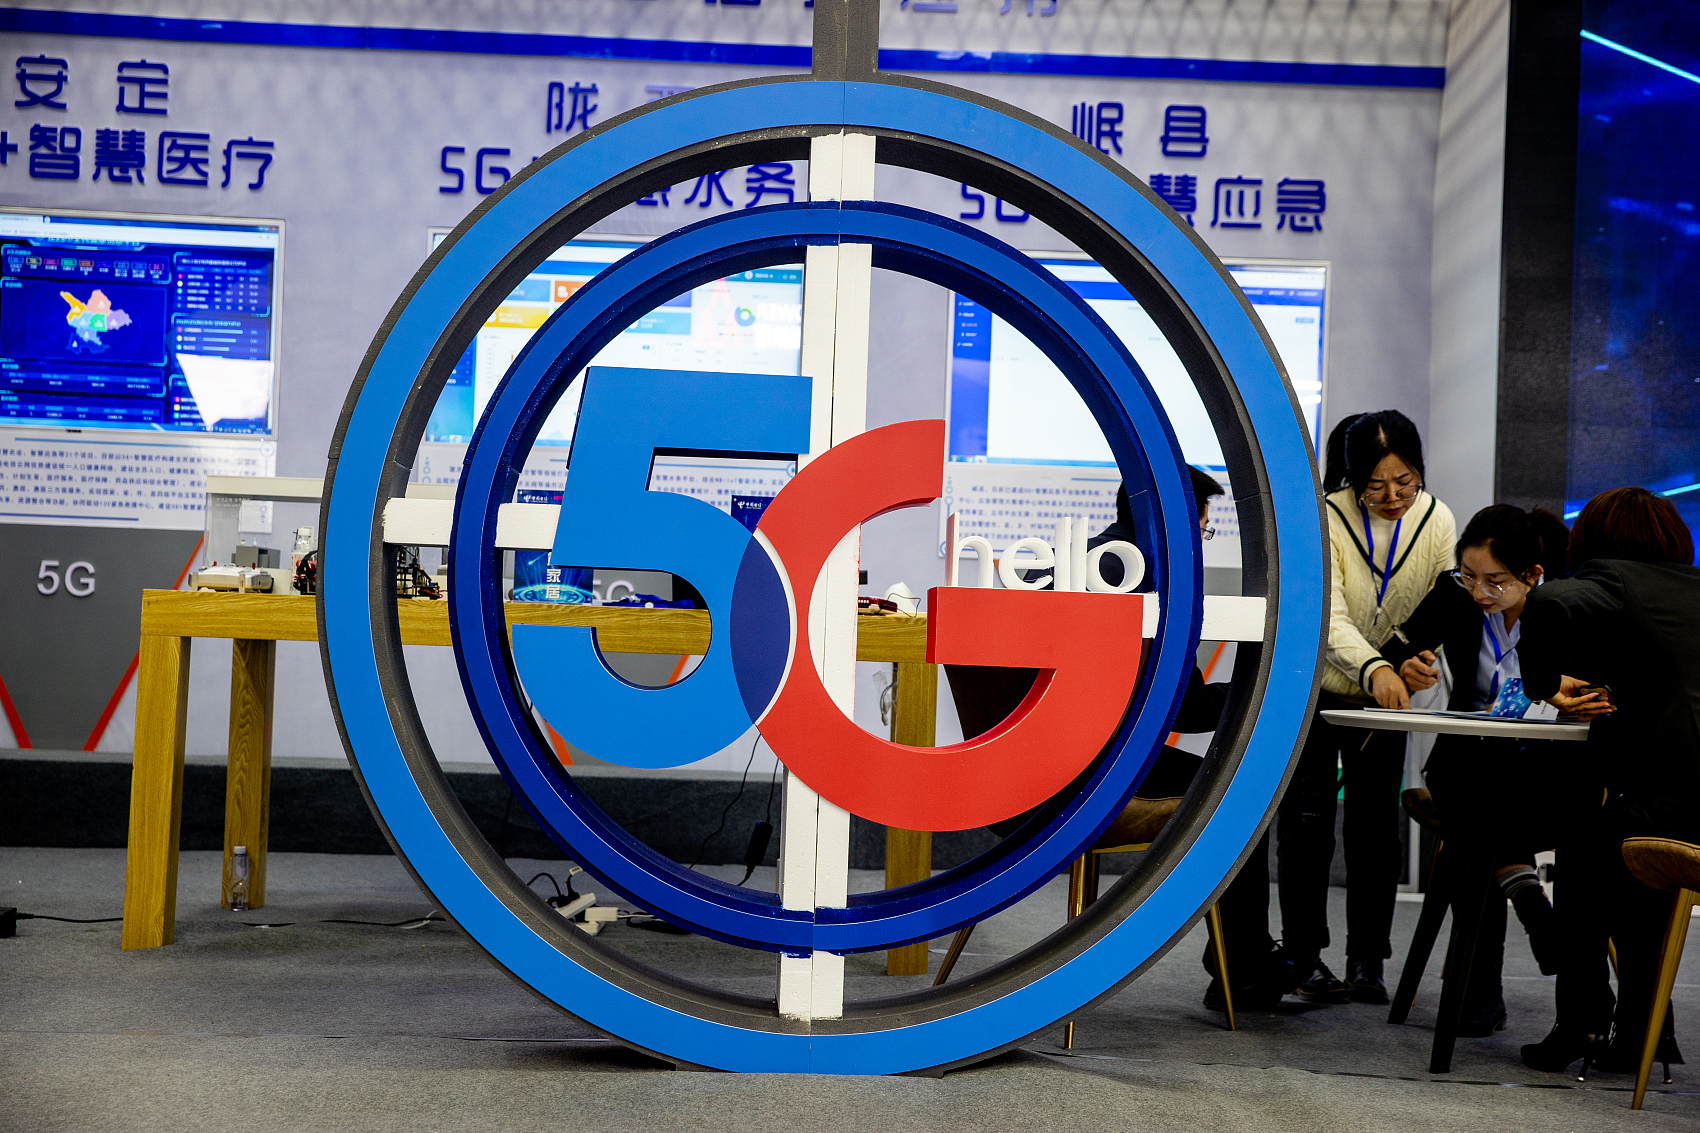 China's Gansu to build 30,000 5G base stations by 2022